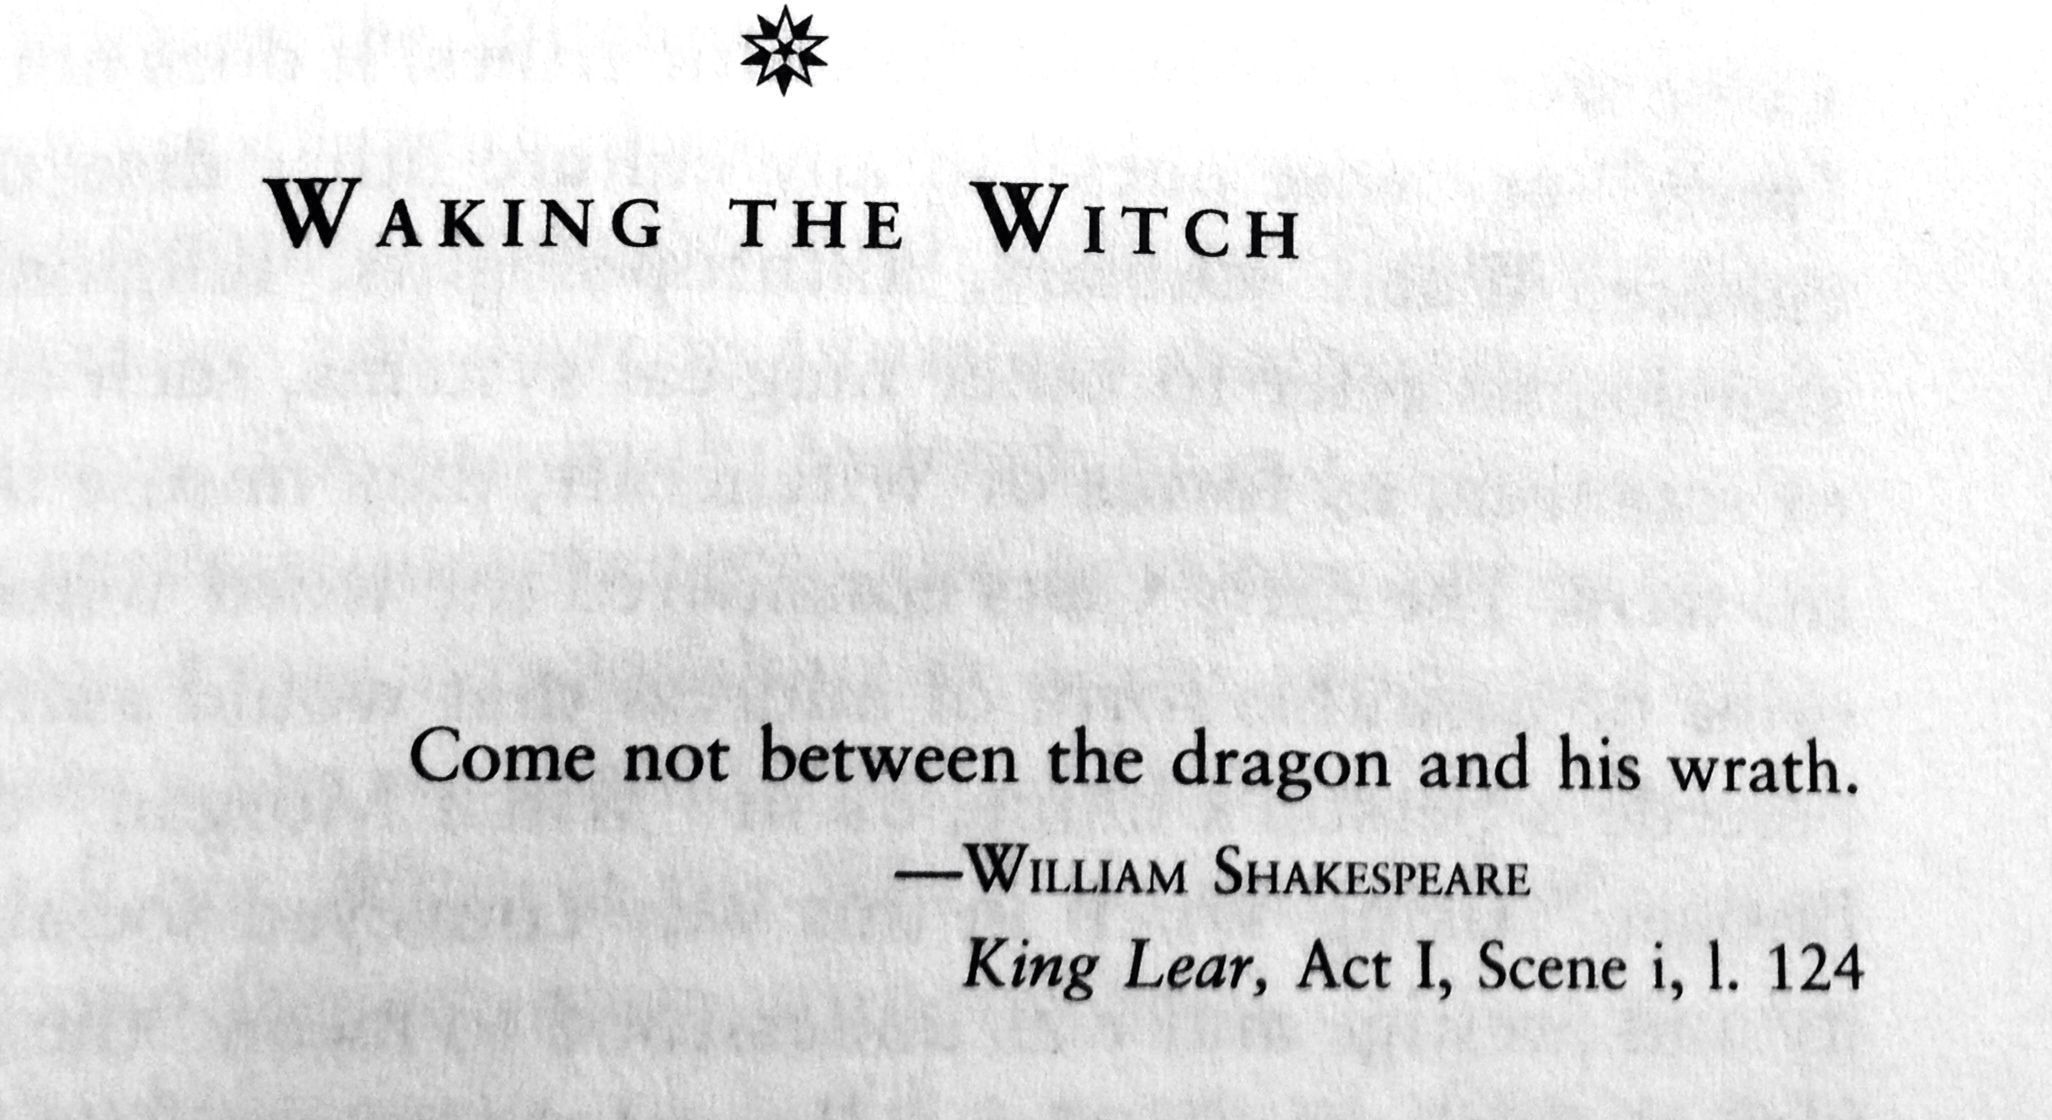 Waking The Witch Come Not Between Dragon And Hi Wrath William Shakespeare King Lear Act I Scene L 124 Wicca Pagan Druid Shakes Paraphrase Hope Thing With Feathers